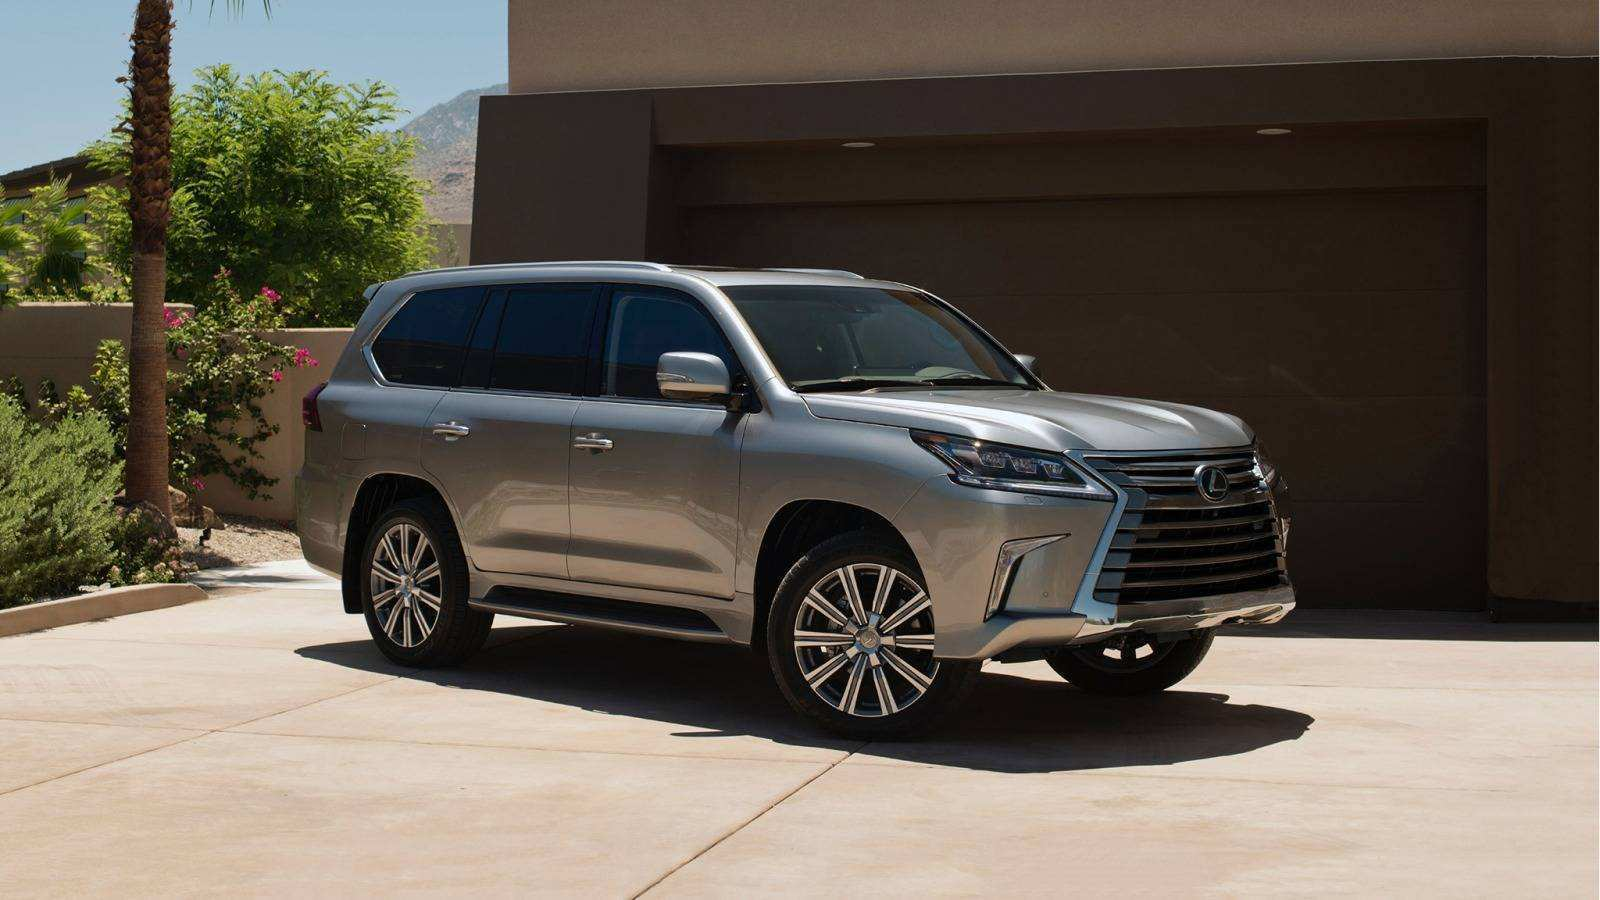 33 Concept of 2019 Lexus Lx 570 Release Date Images by 2019 Lexus Lx 570 Release Date